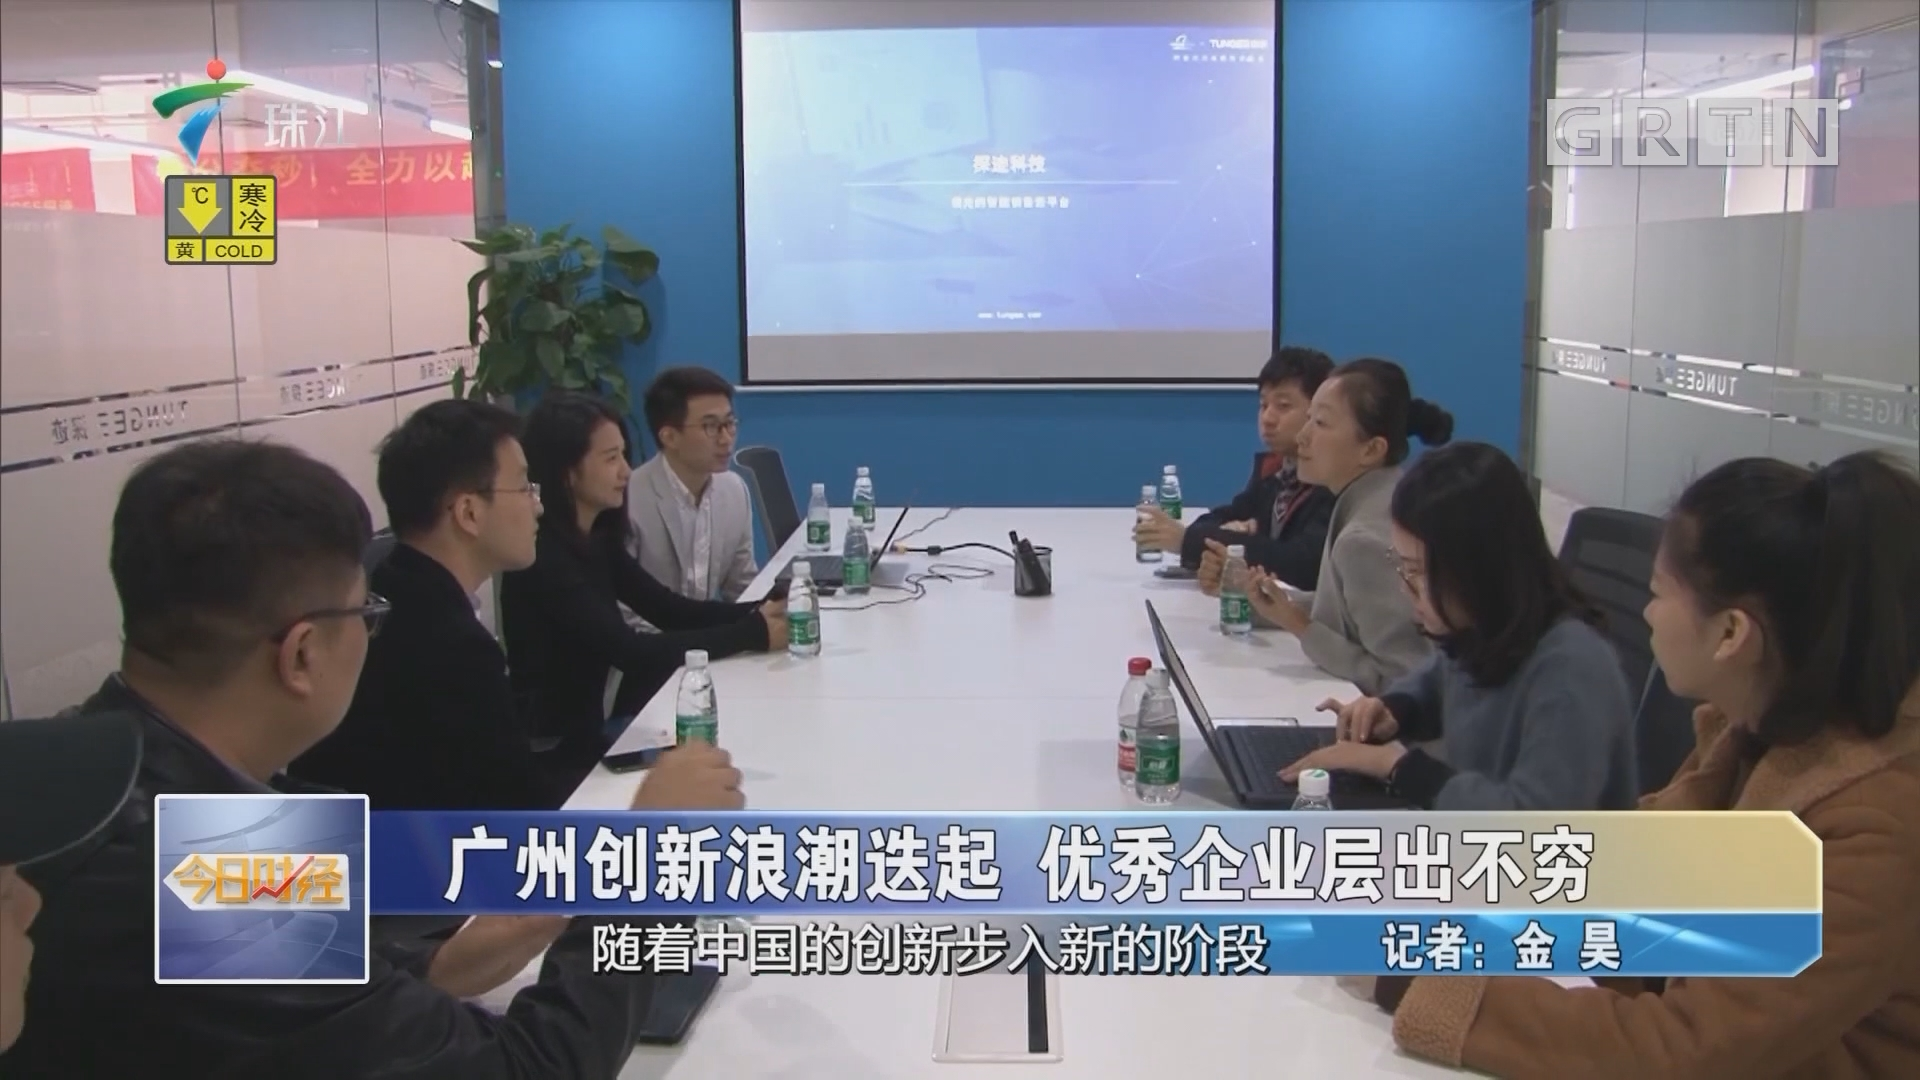 广州创新浪潮迭起 优秀企业层出不穷